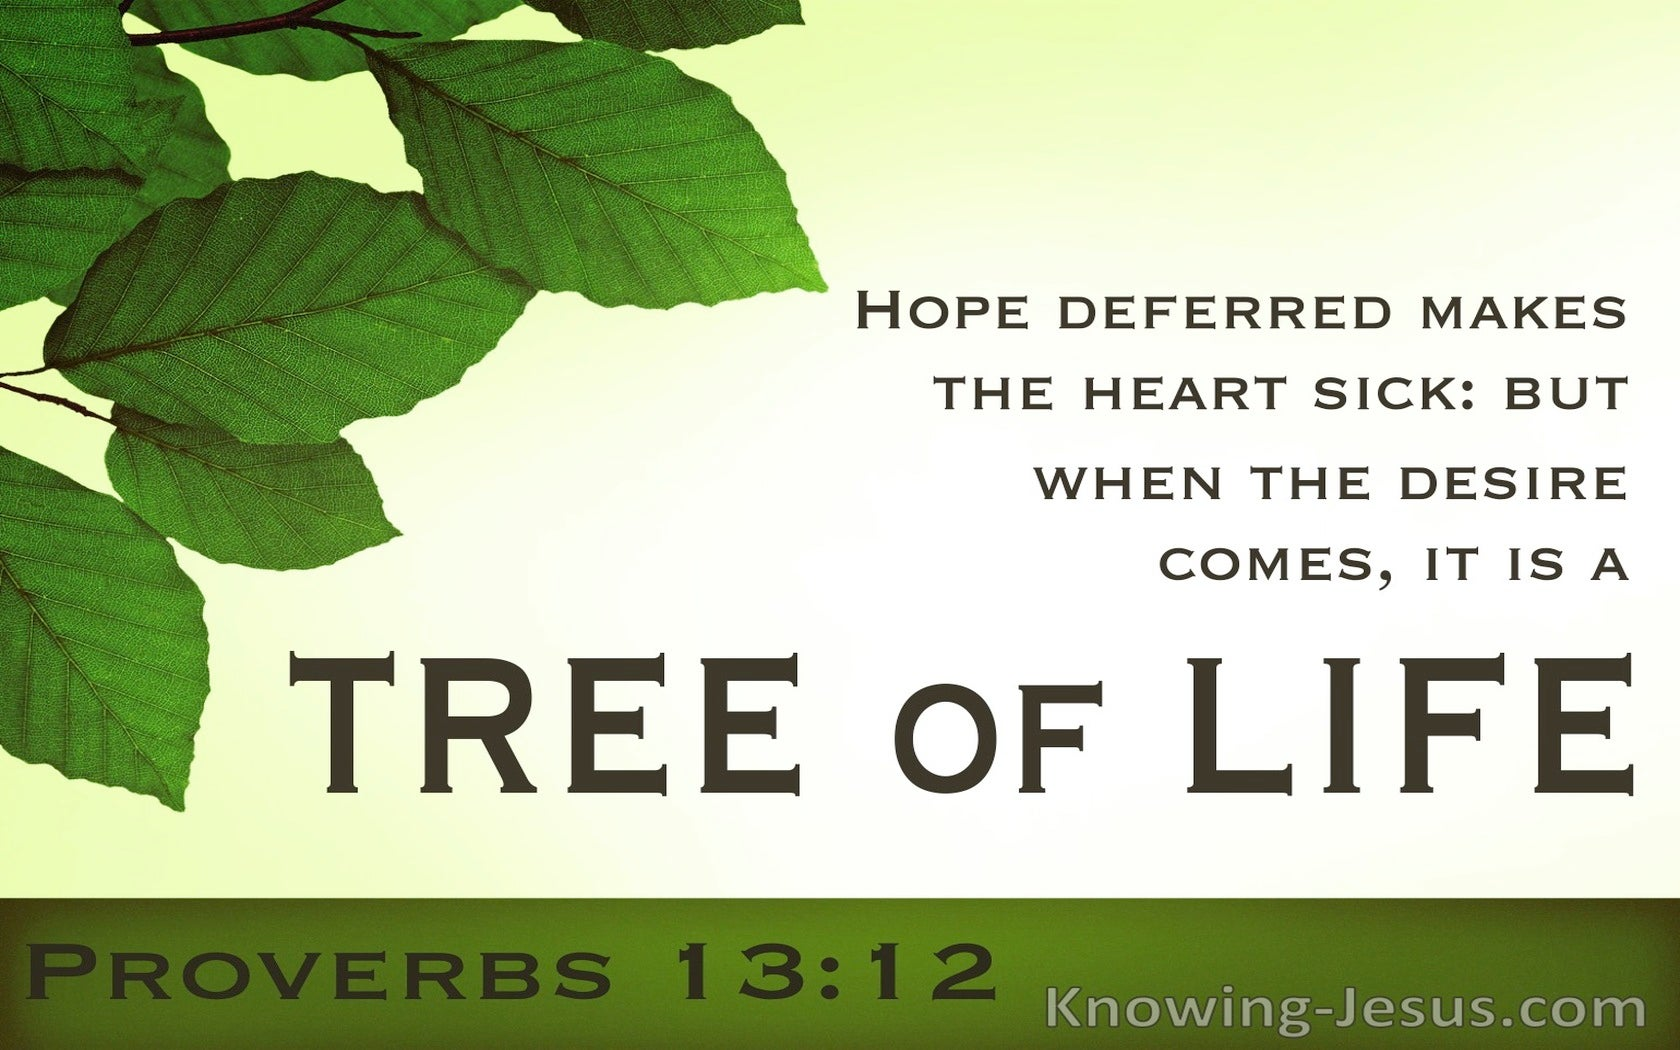 The Joy of Deferred Hope (devotional) (green) - Proverbs 13:12